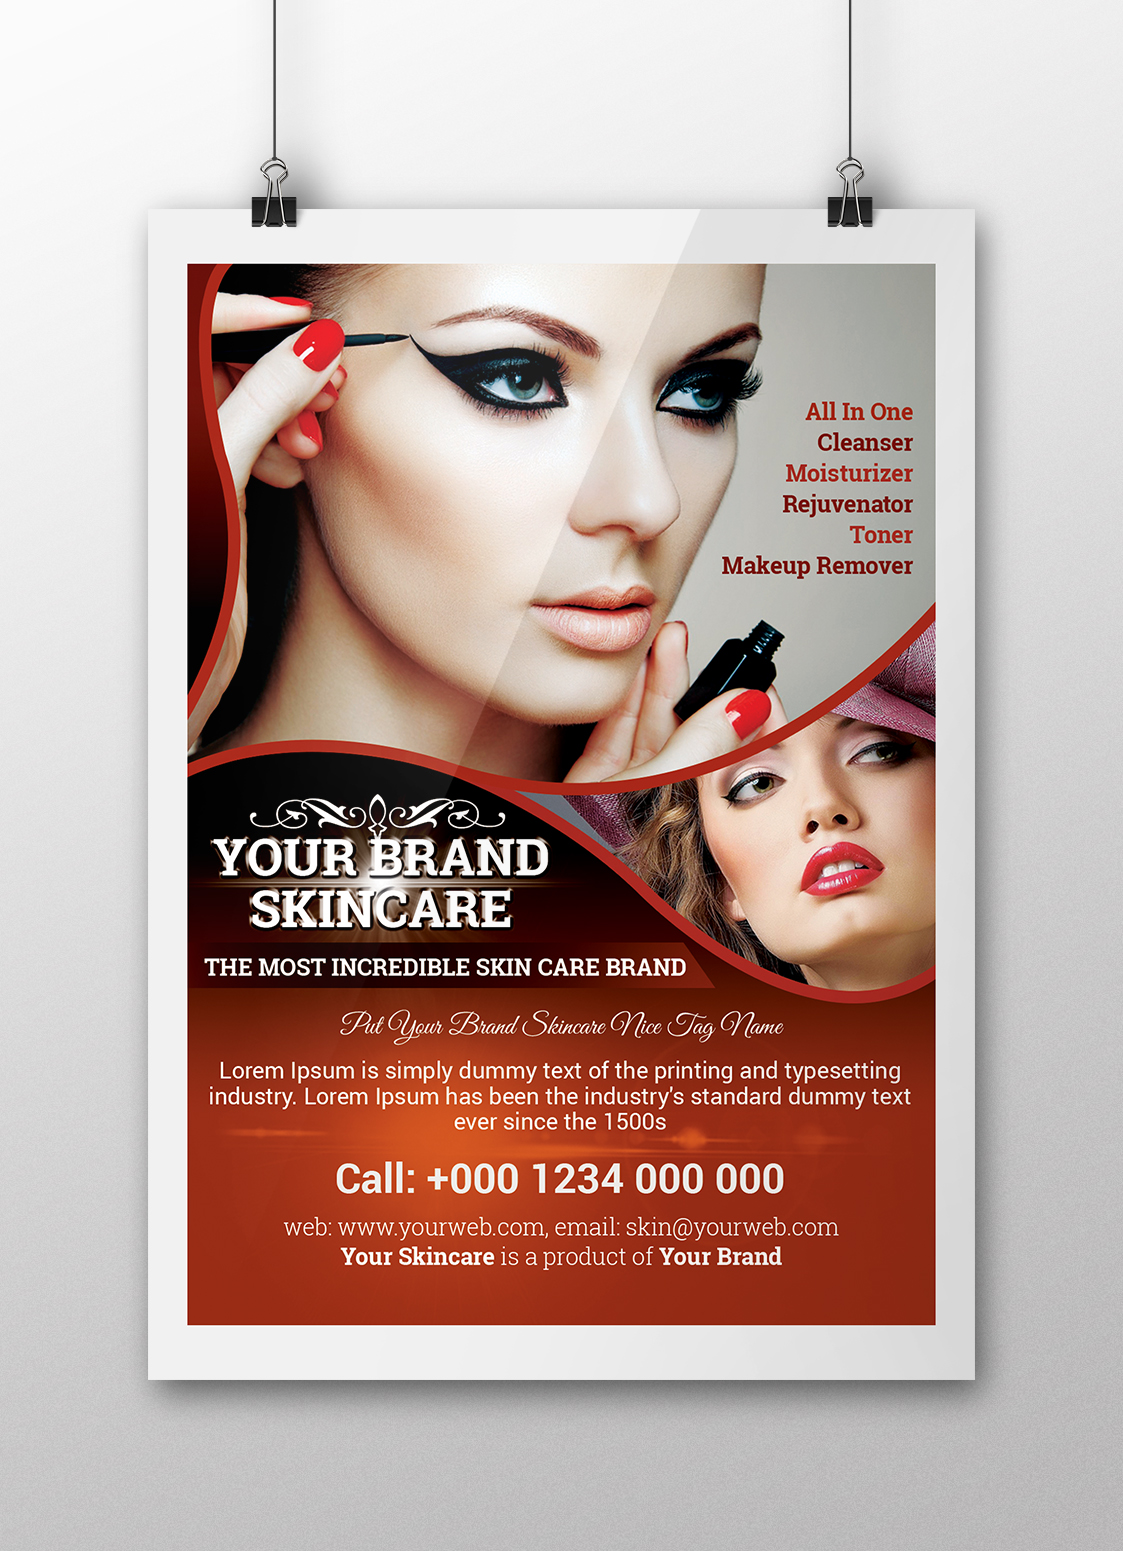 INSTANT DOWNLOAD For This Skincare Beauty Salon And Spa Flyer Template Payment Method Paypal